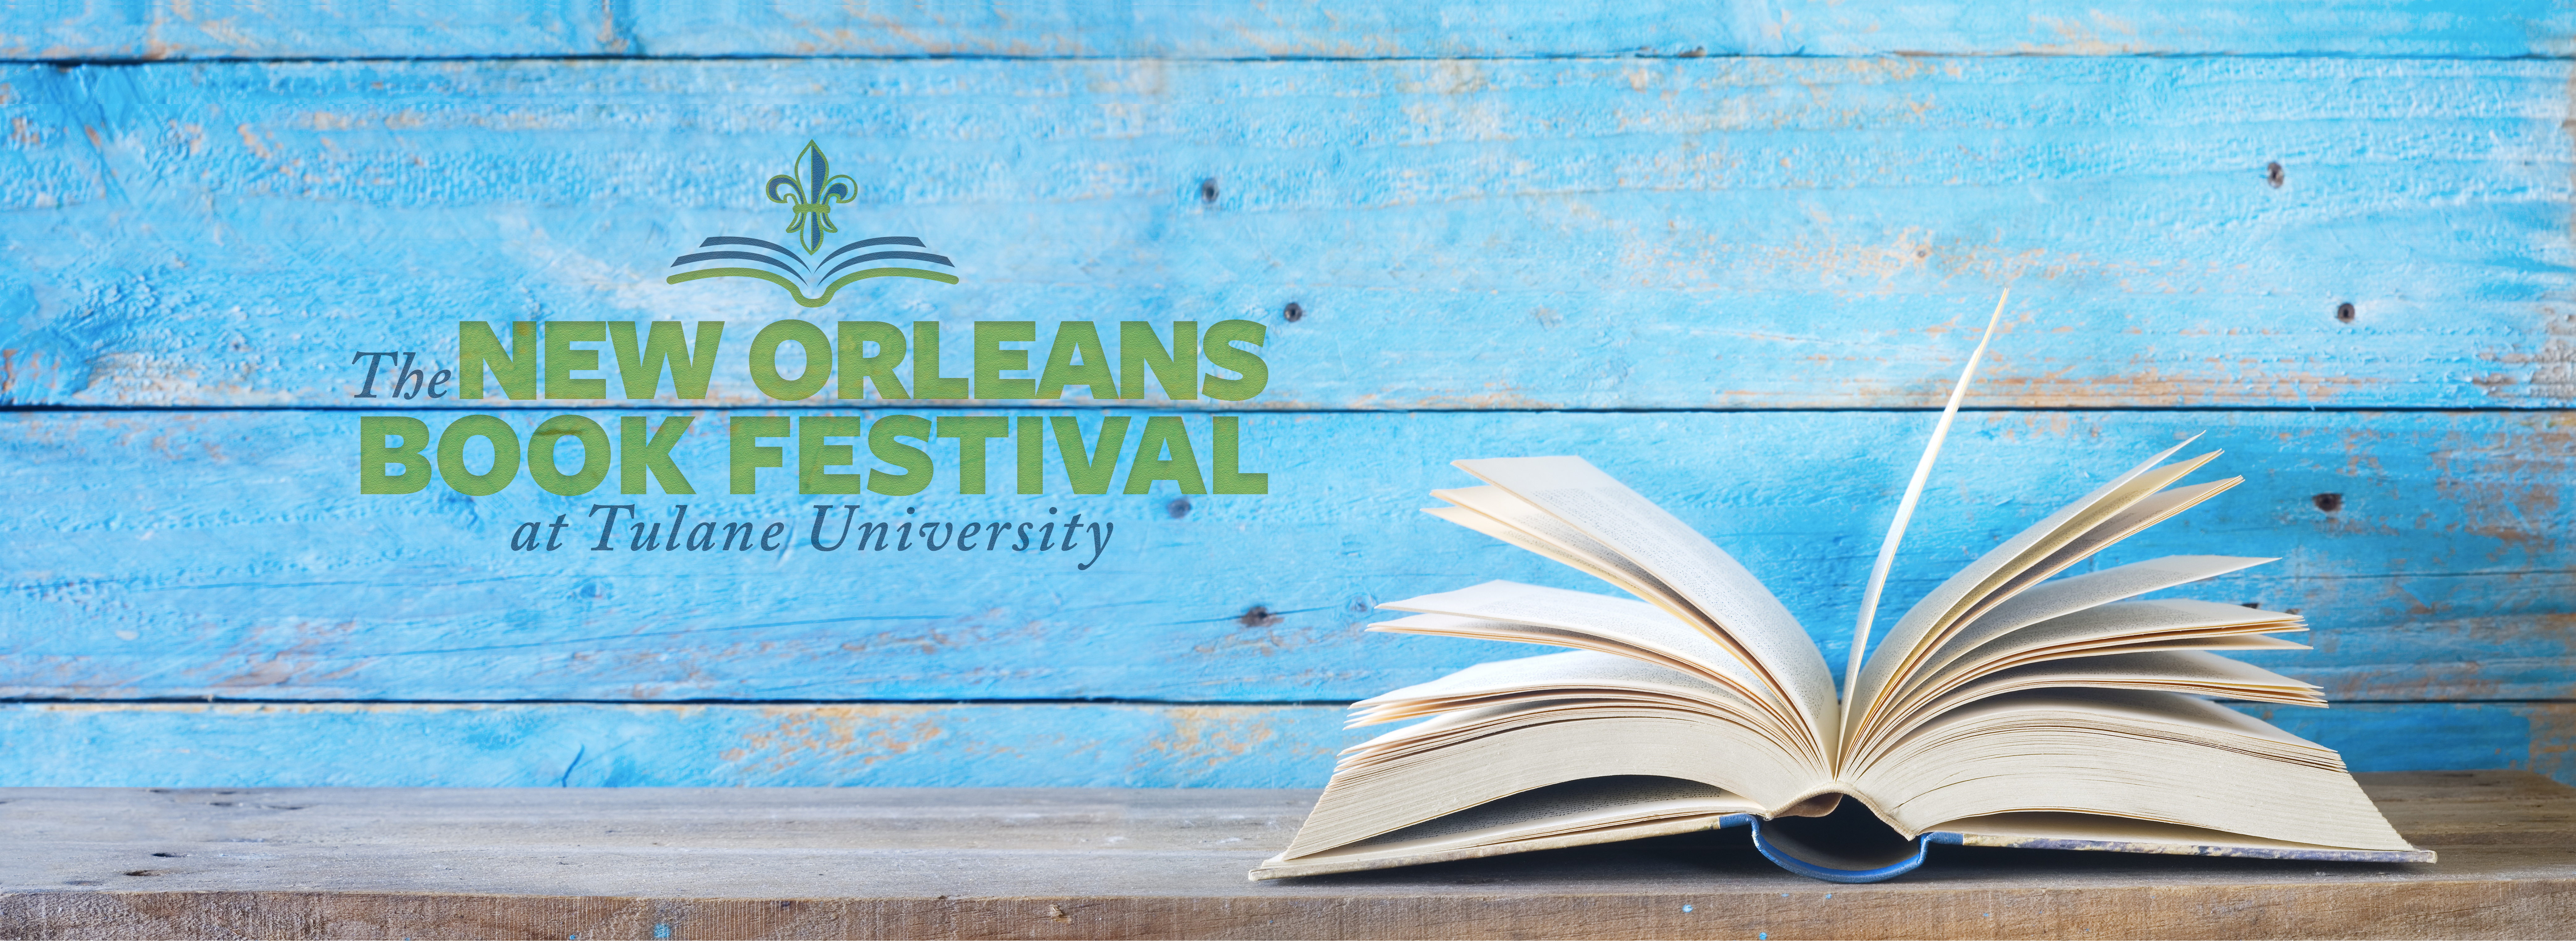 New Orleans Book Festival